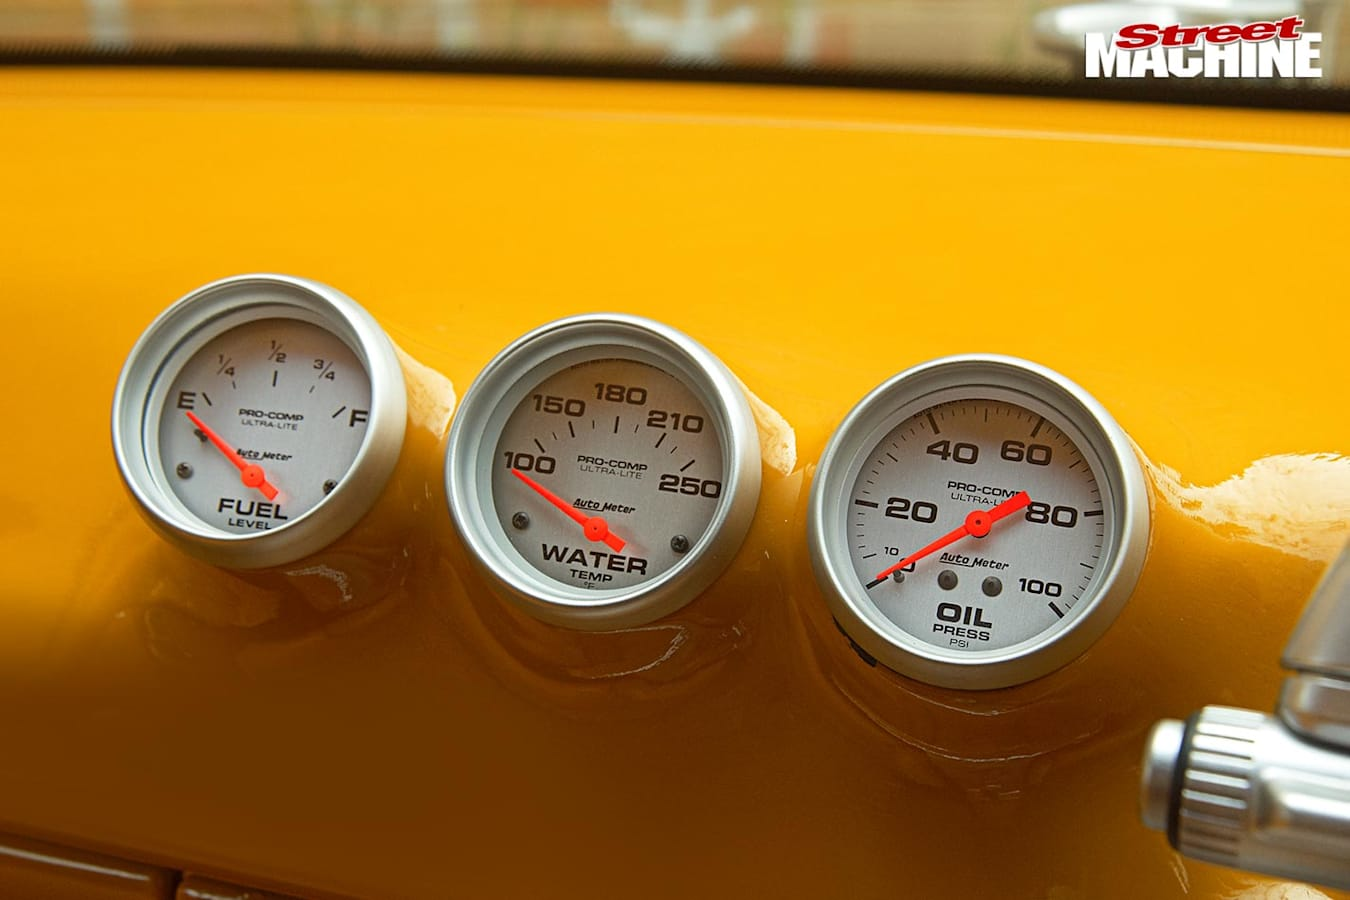 Holden VN Commodore gauges